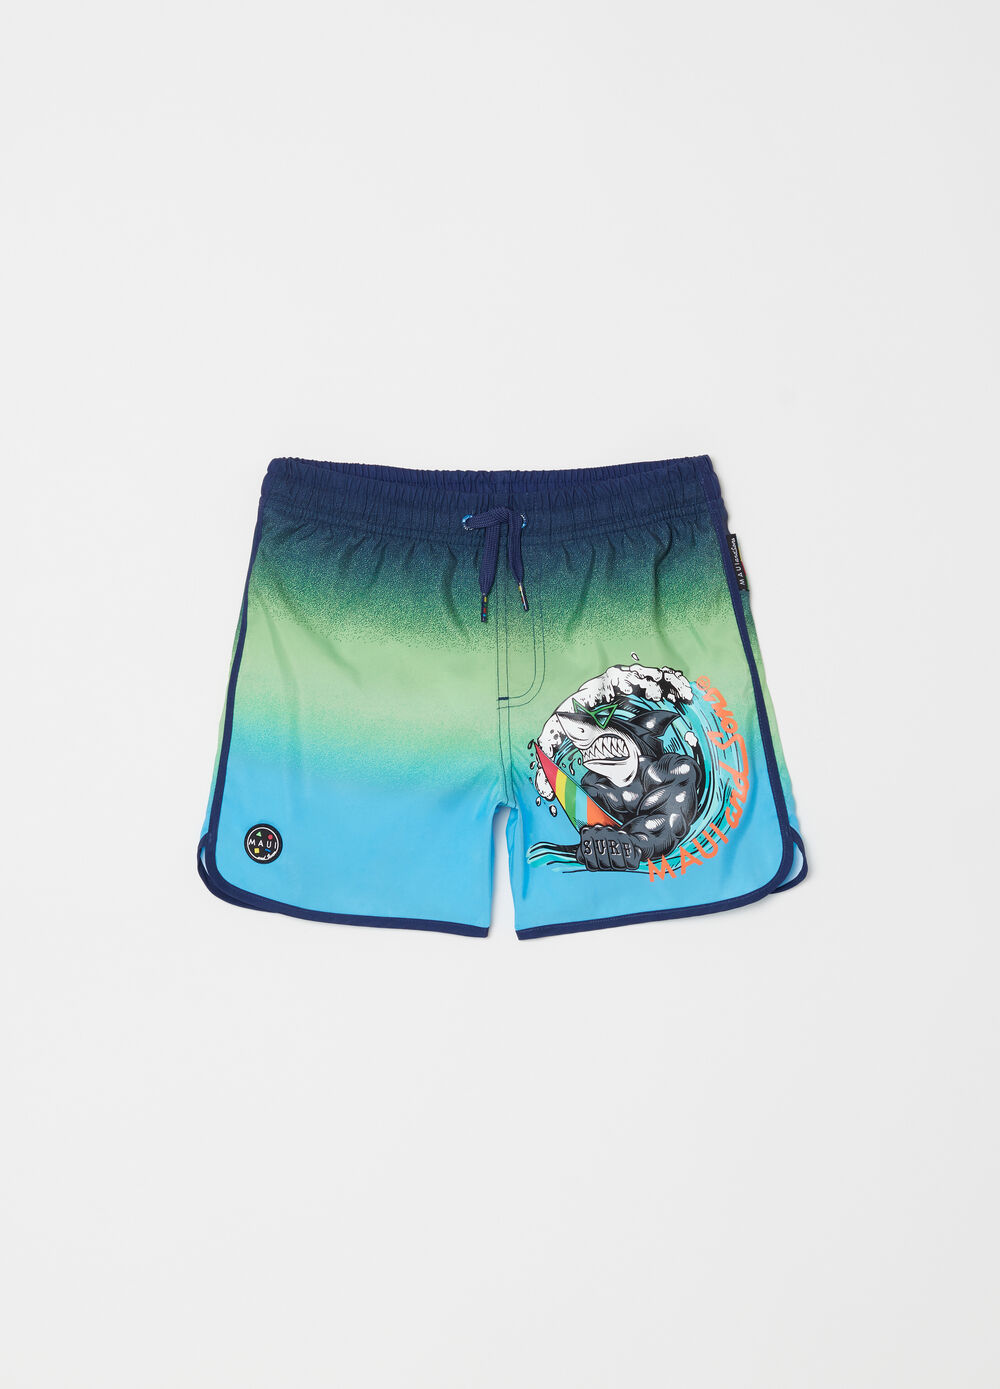 Swim boxer shorts with print by Maui and Sons